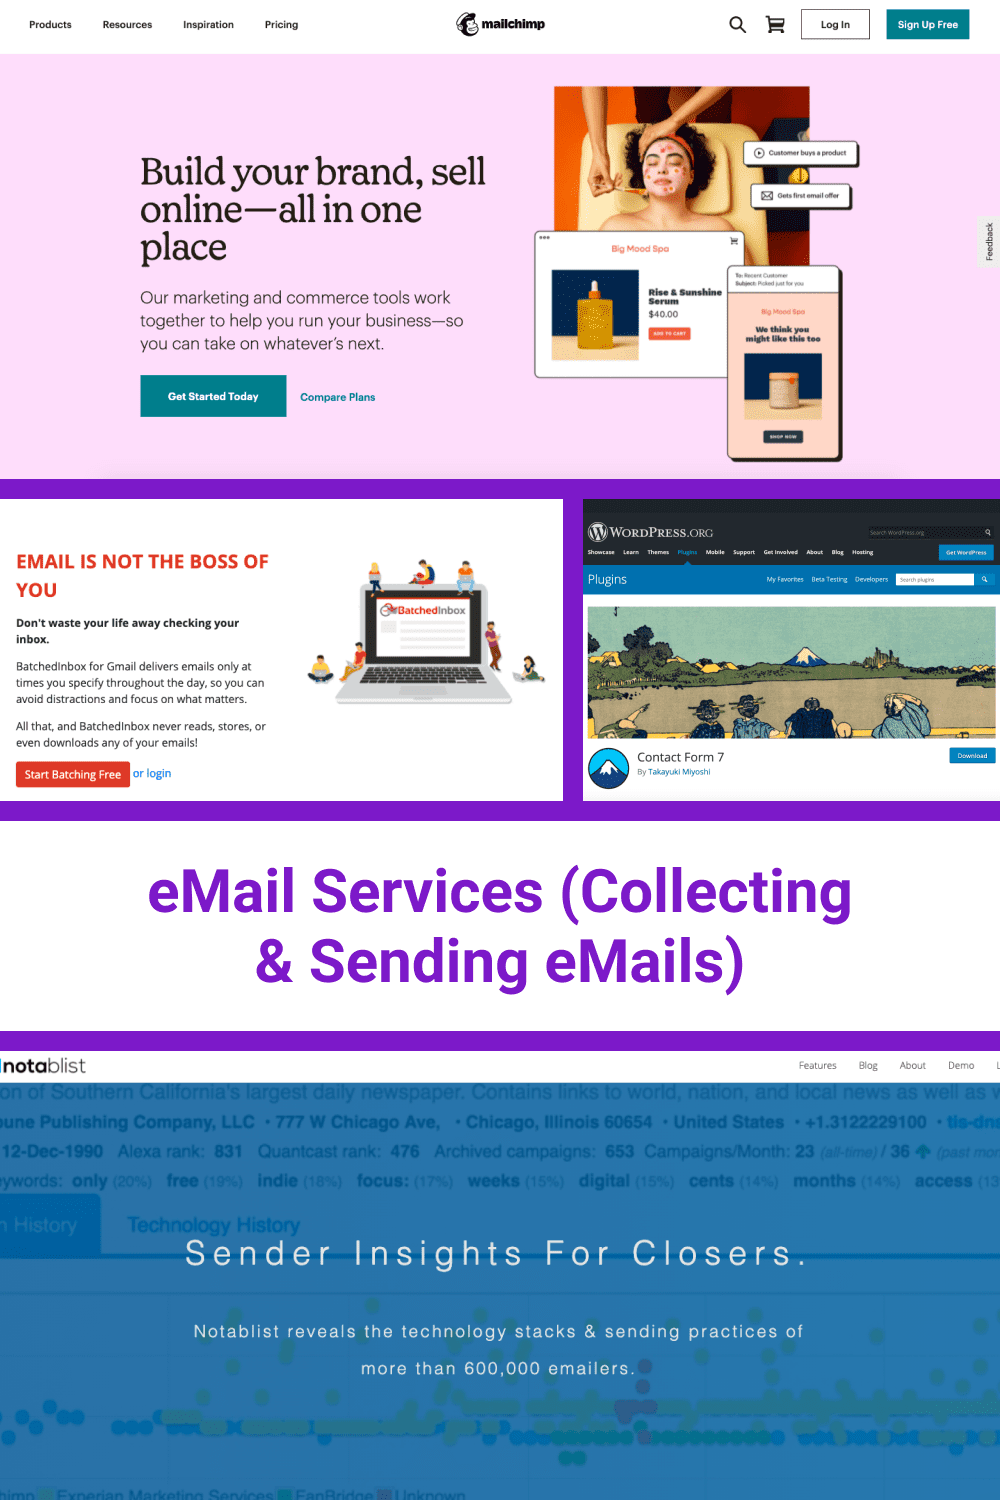 eMail Services (Collecting Sending eMails).